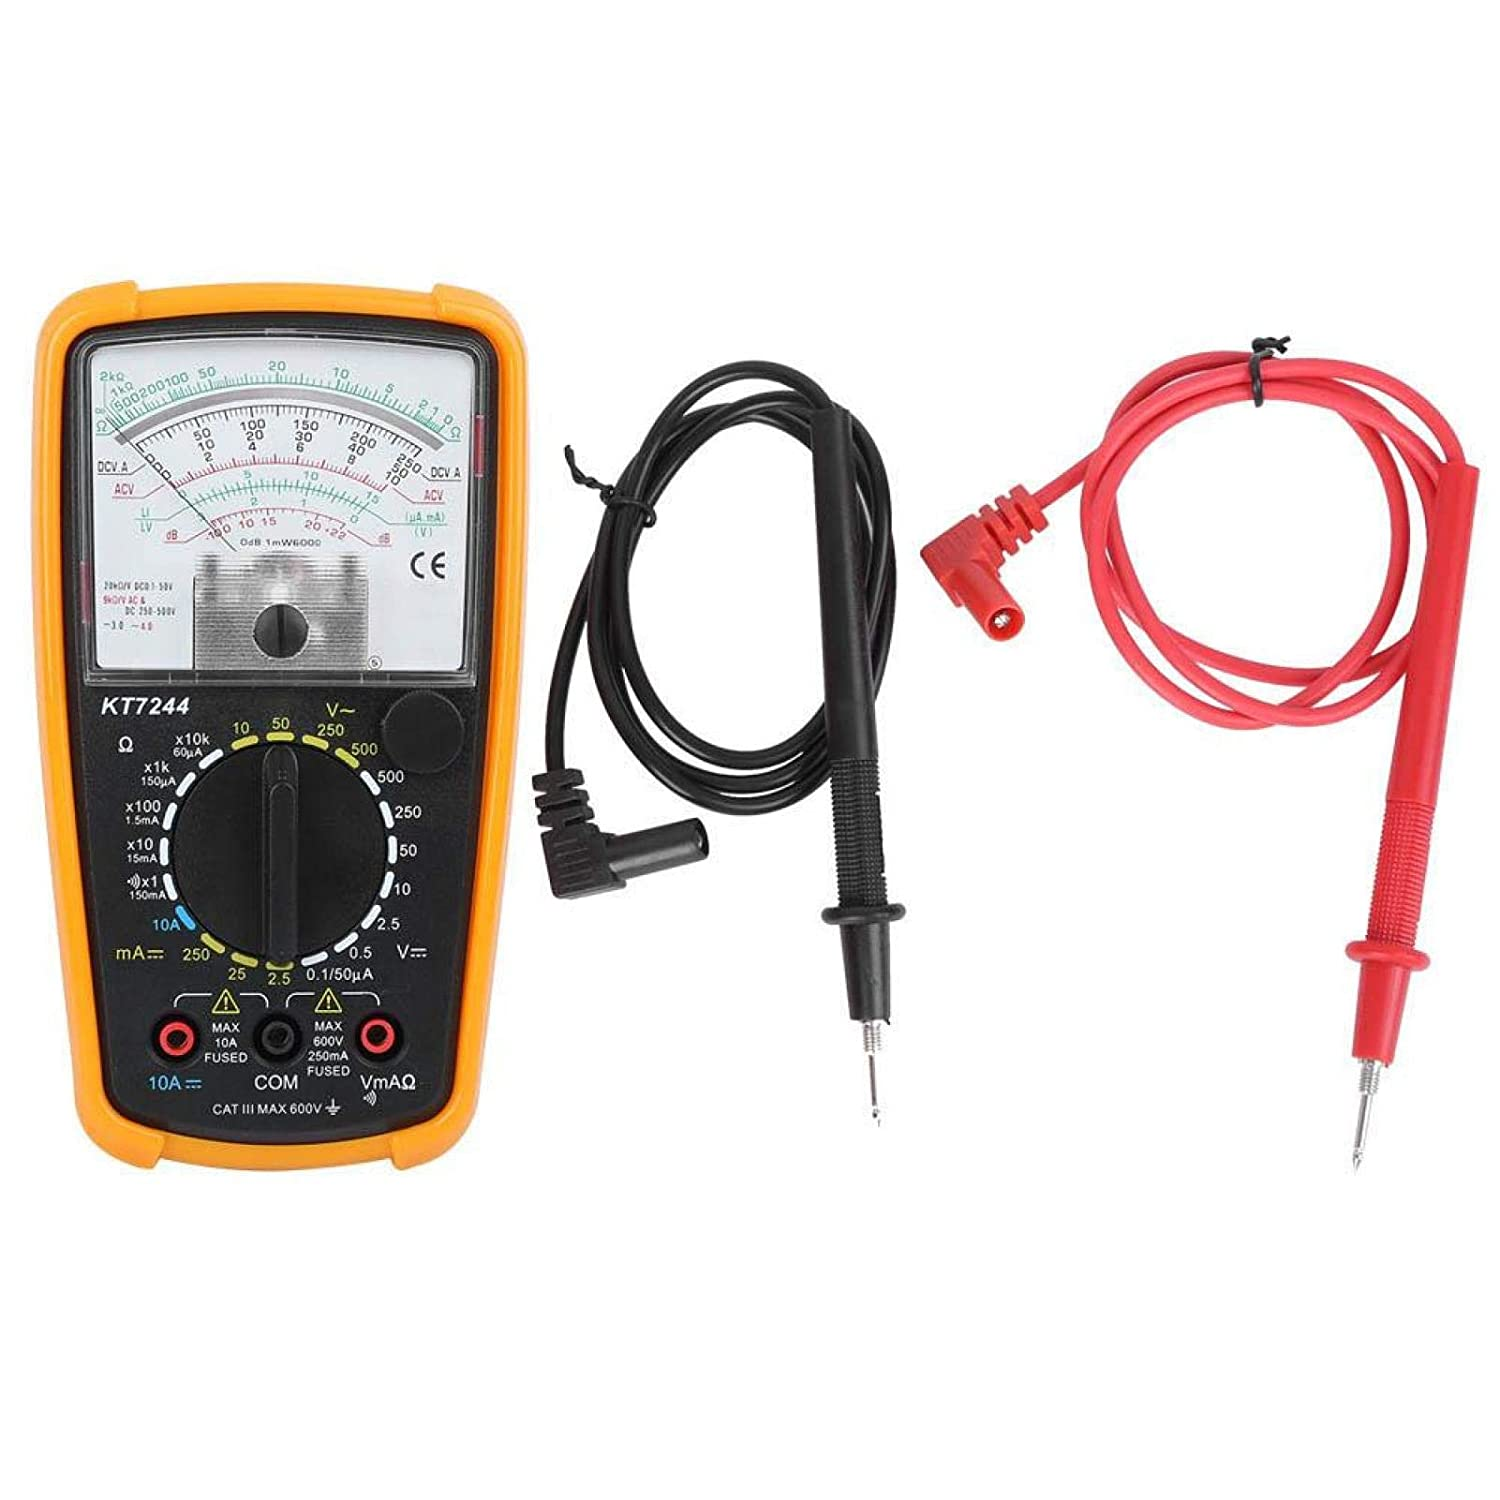 Louisville-Jefferson County Mall Multimeter Convenient High Max 51% OFF Accuracy with Scale Mirror